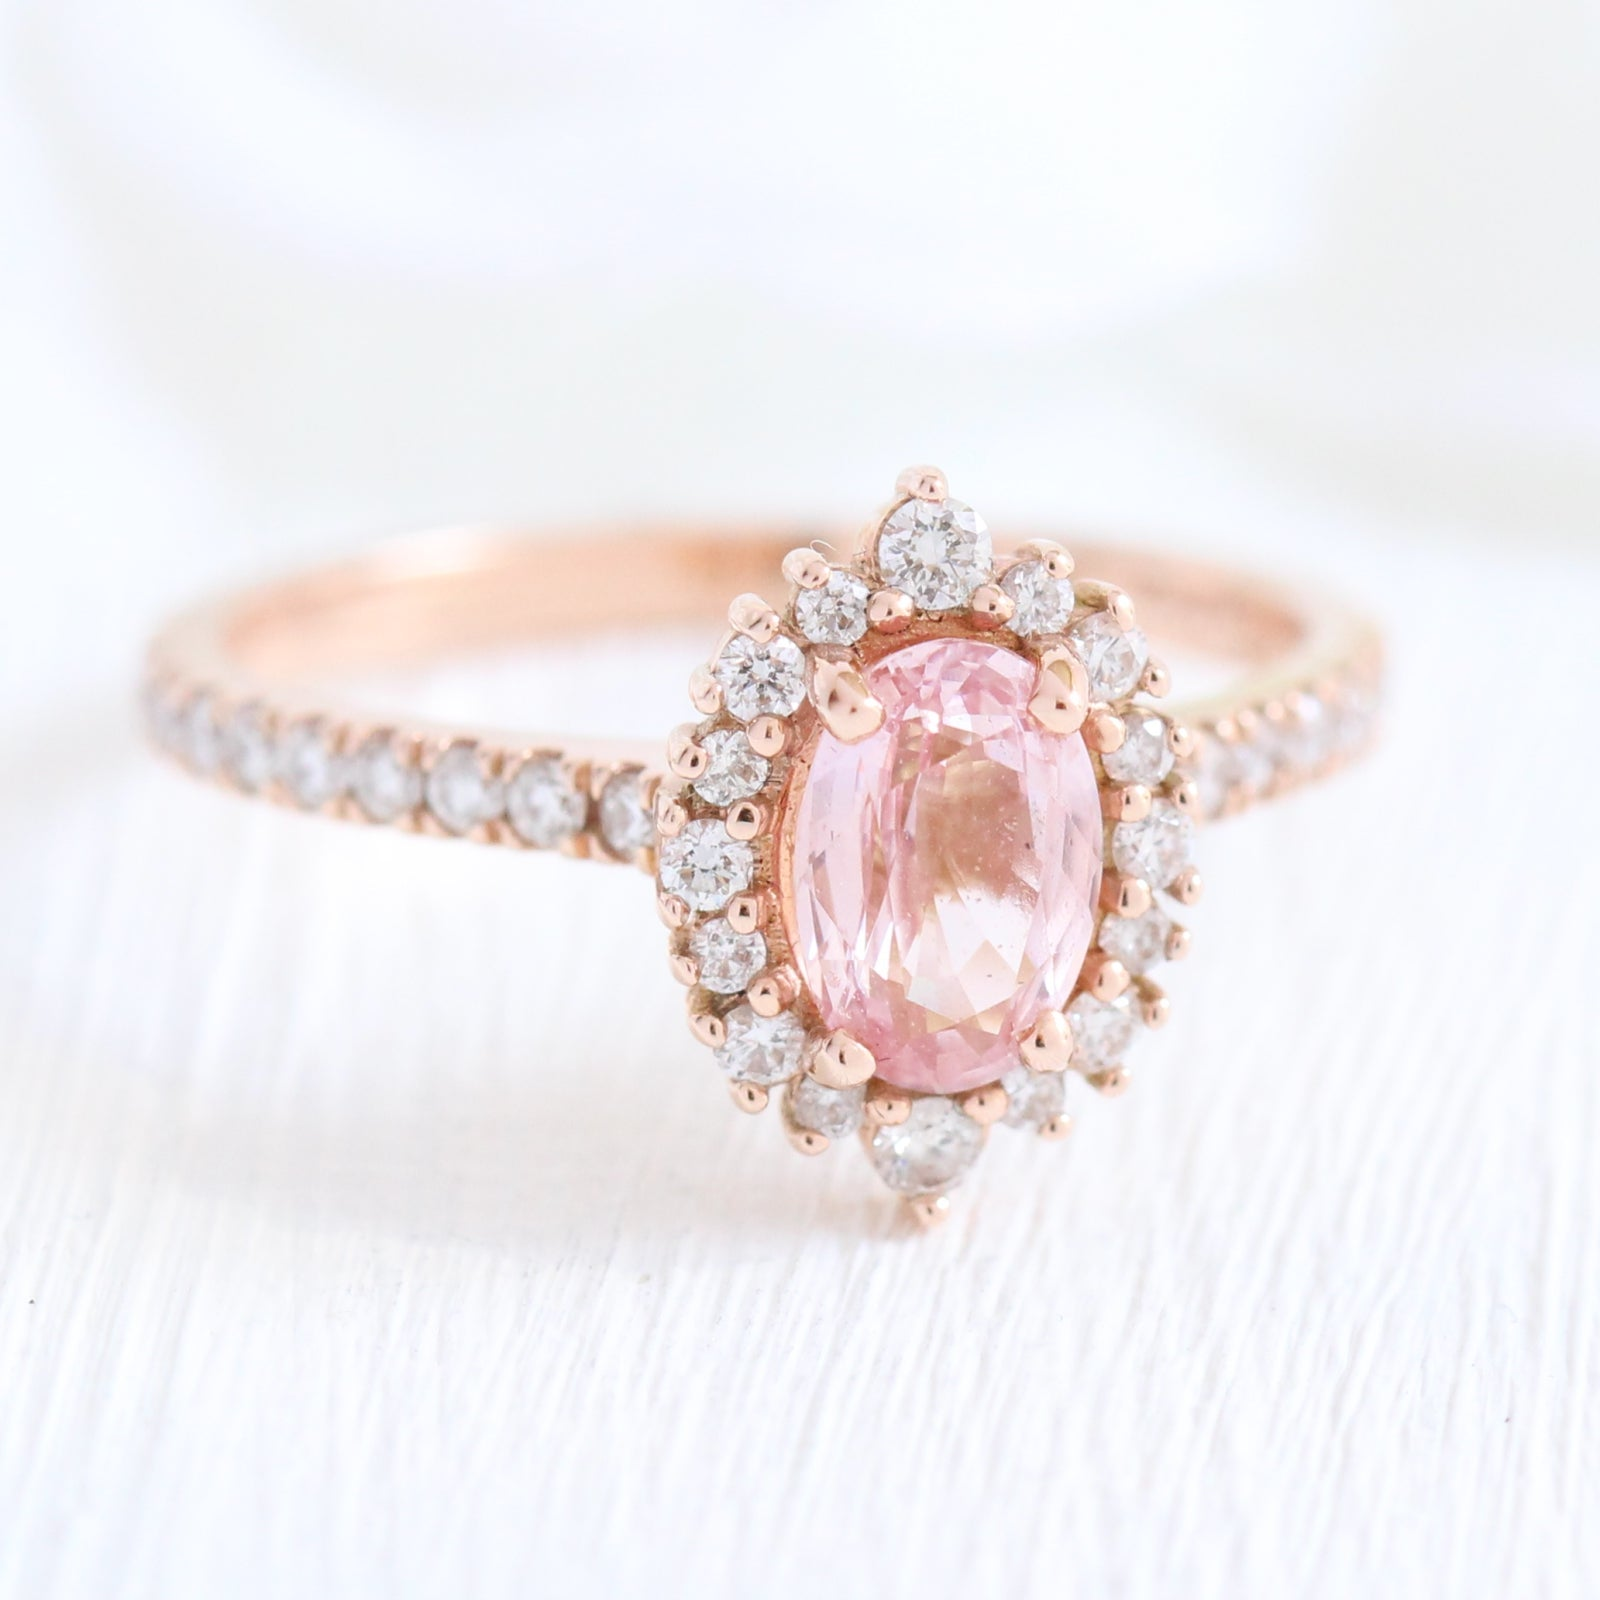 Tiara Halo Diamond Peach Sapphire Engagement Ring In 14k Rose Gold Pave Band Size 6 25 La More Design,Modern White Kitchen Cabinets With Grey Countertops